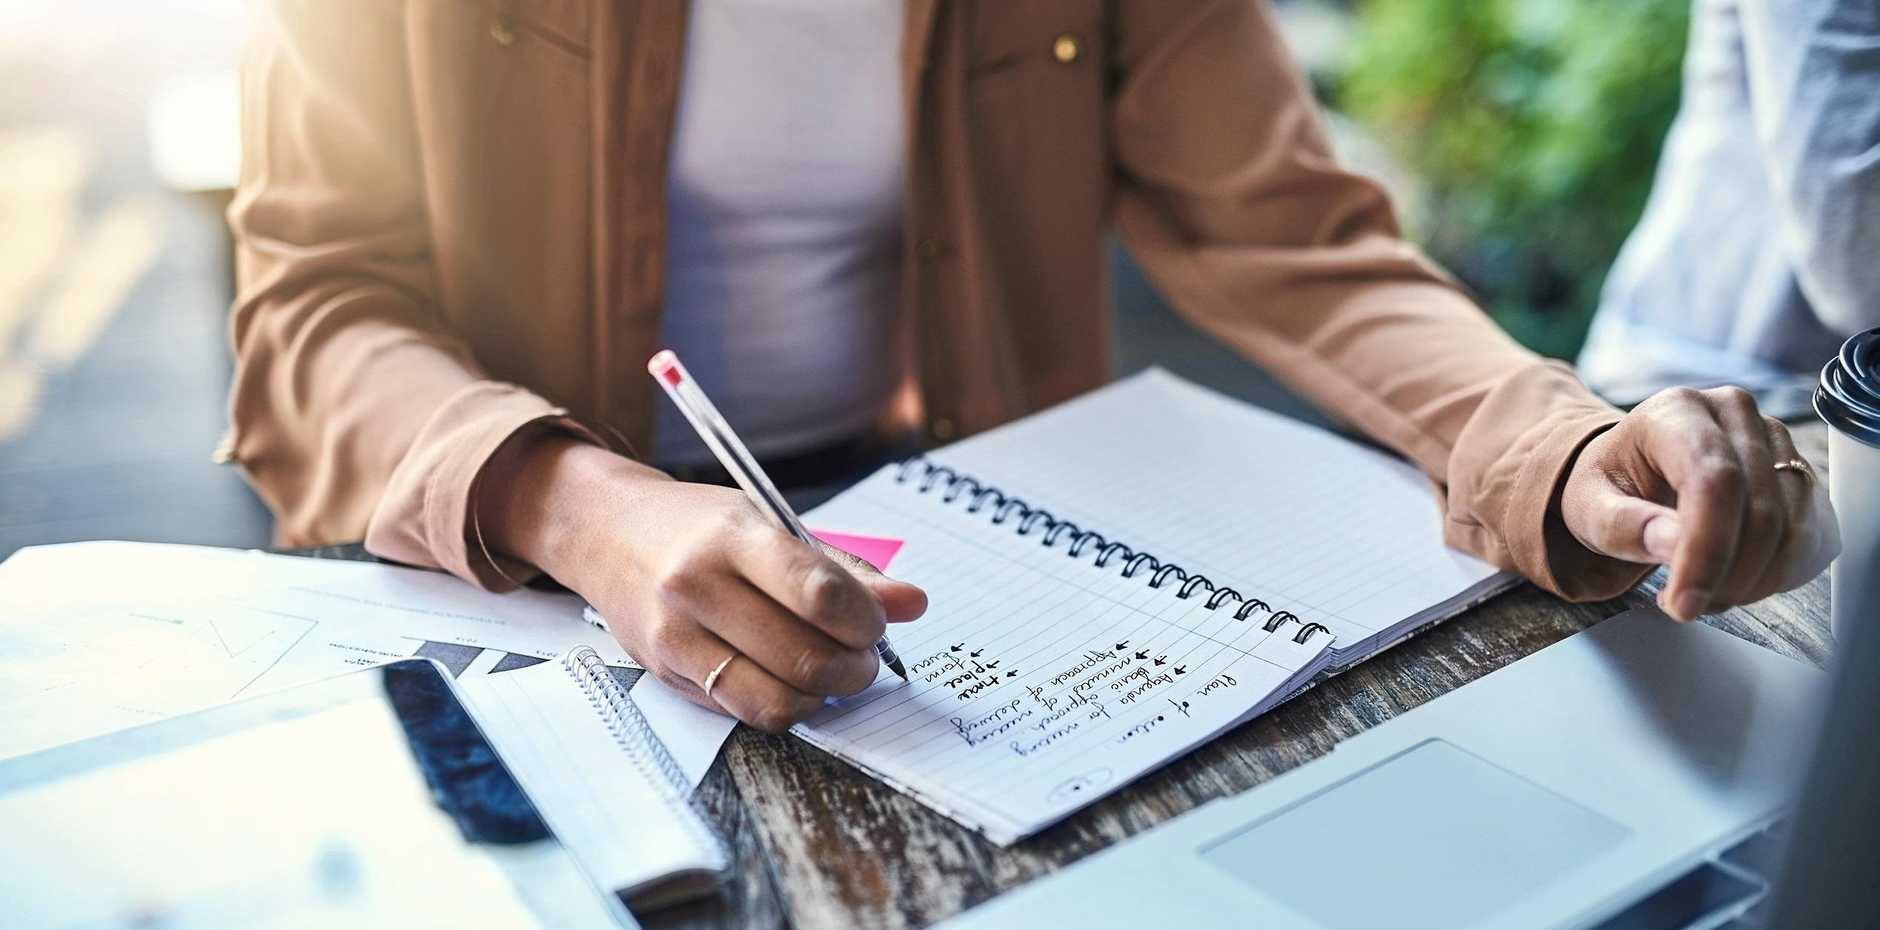 Write down your goals and say why they are valuable and important to give you a better chance of achieving them.